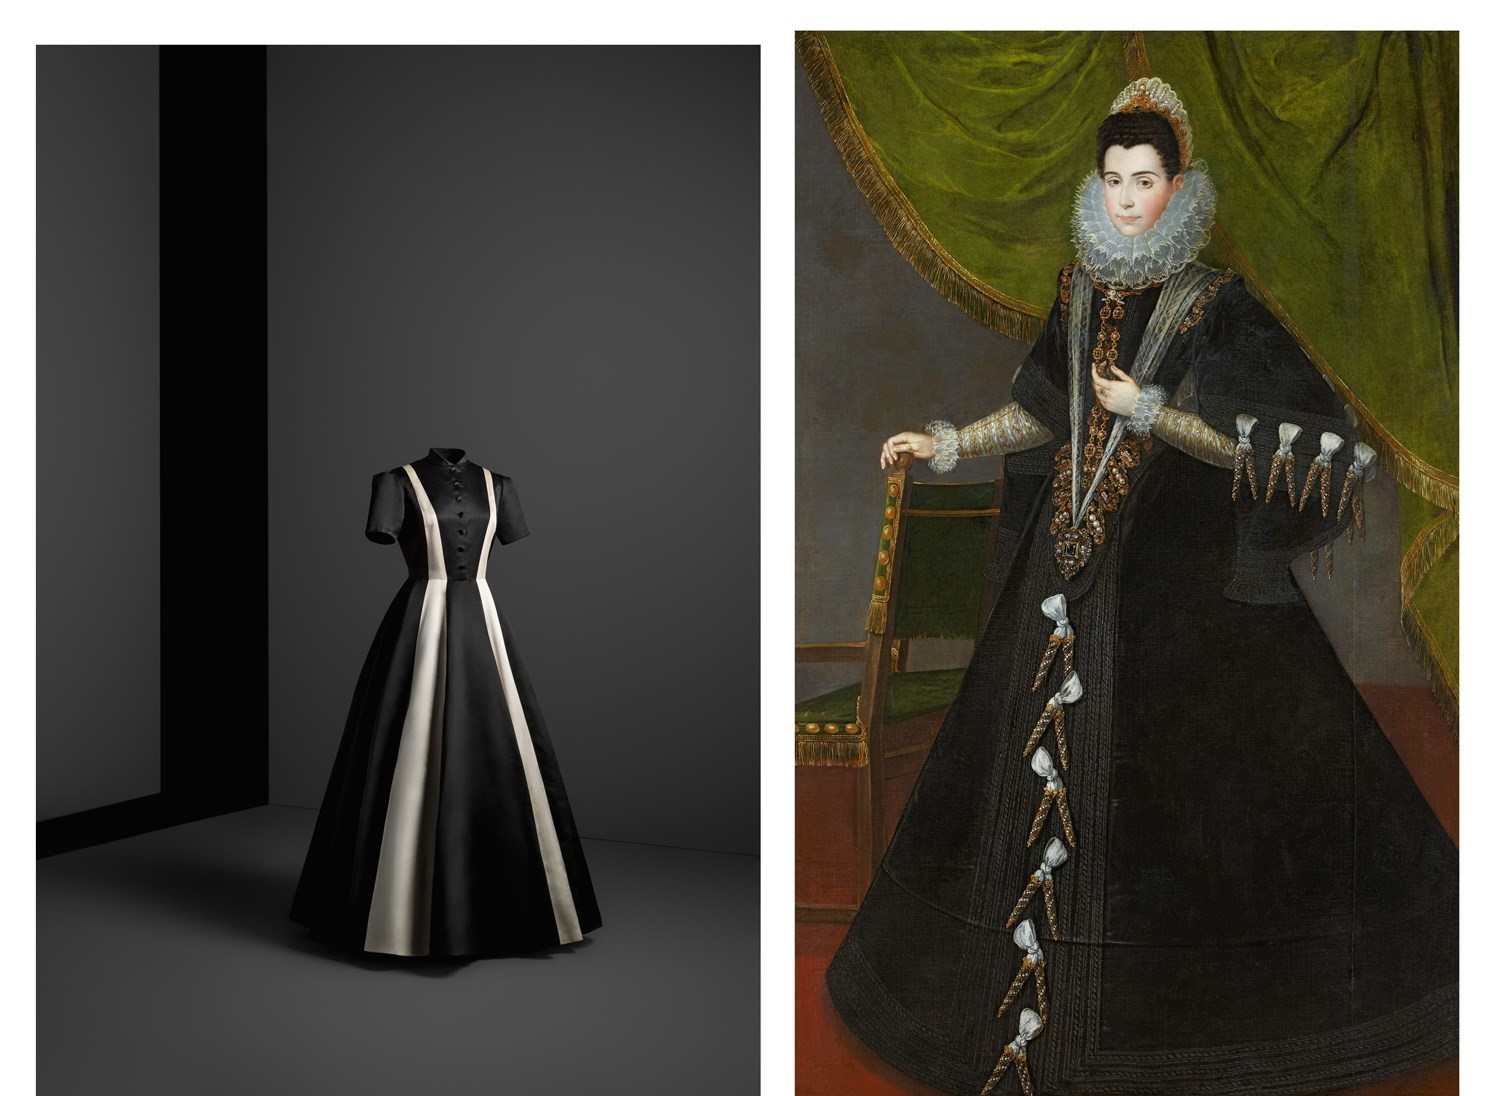 ANOTHER  - Balenciaga and Spanish painting